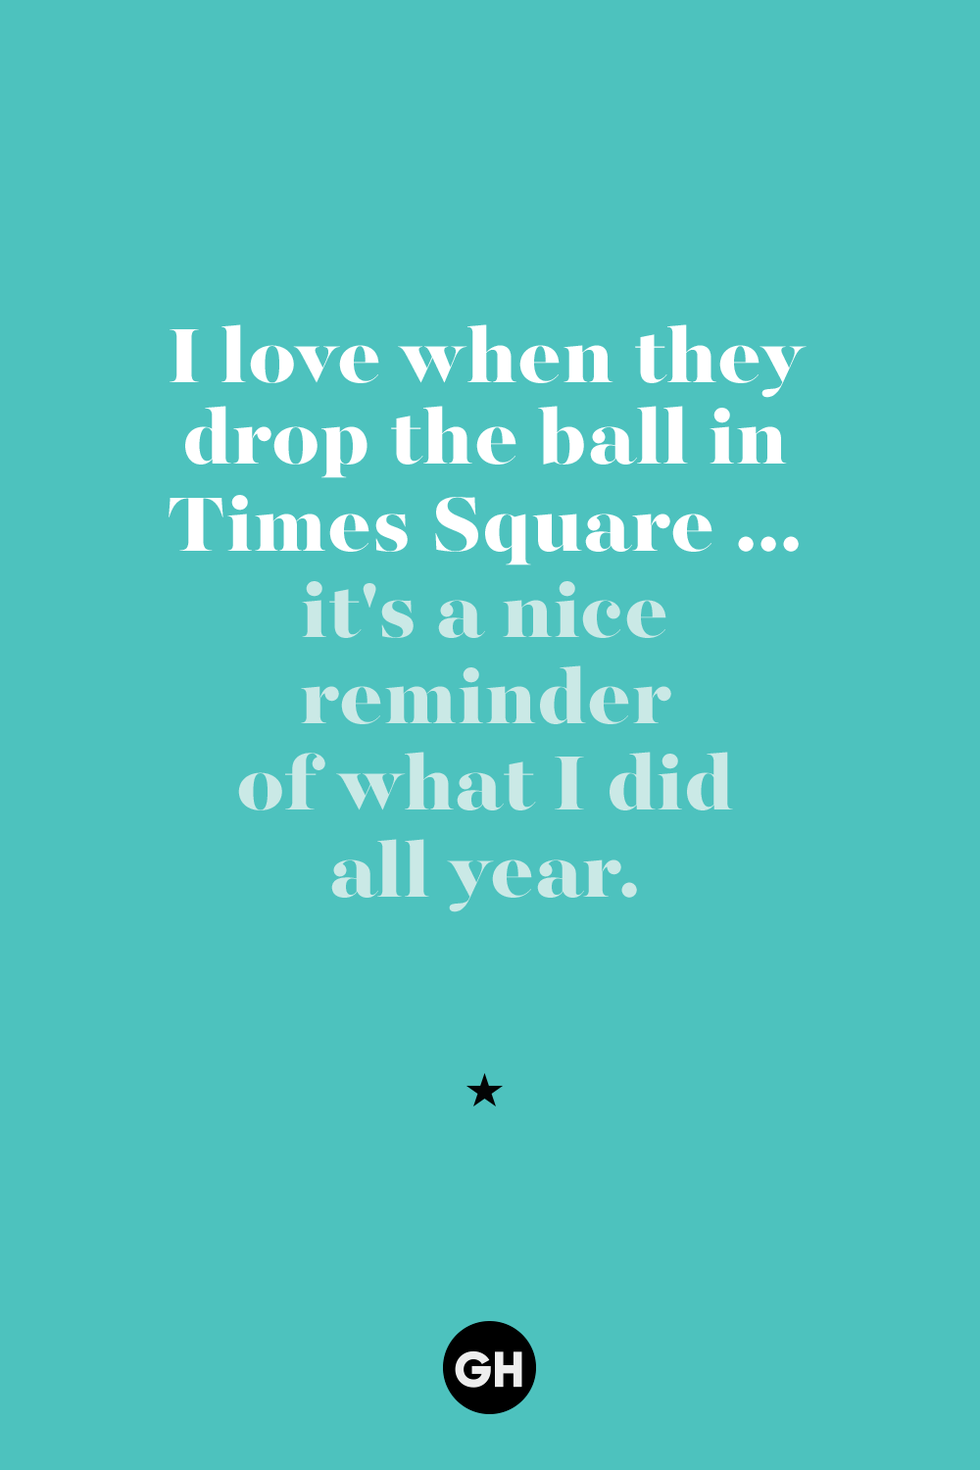 These Hilarious New Year's Jokes Will Keep You Laughing